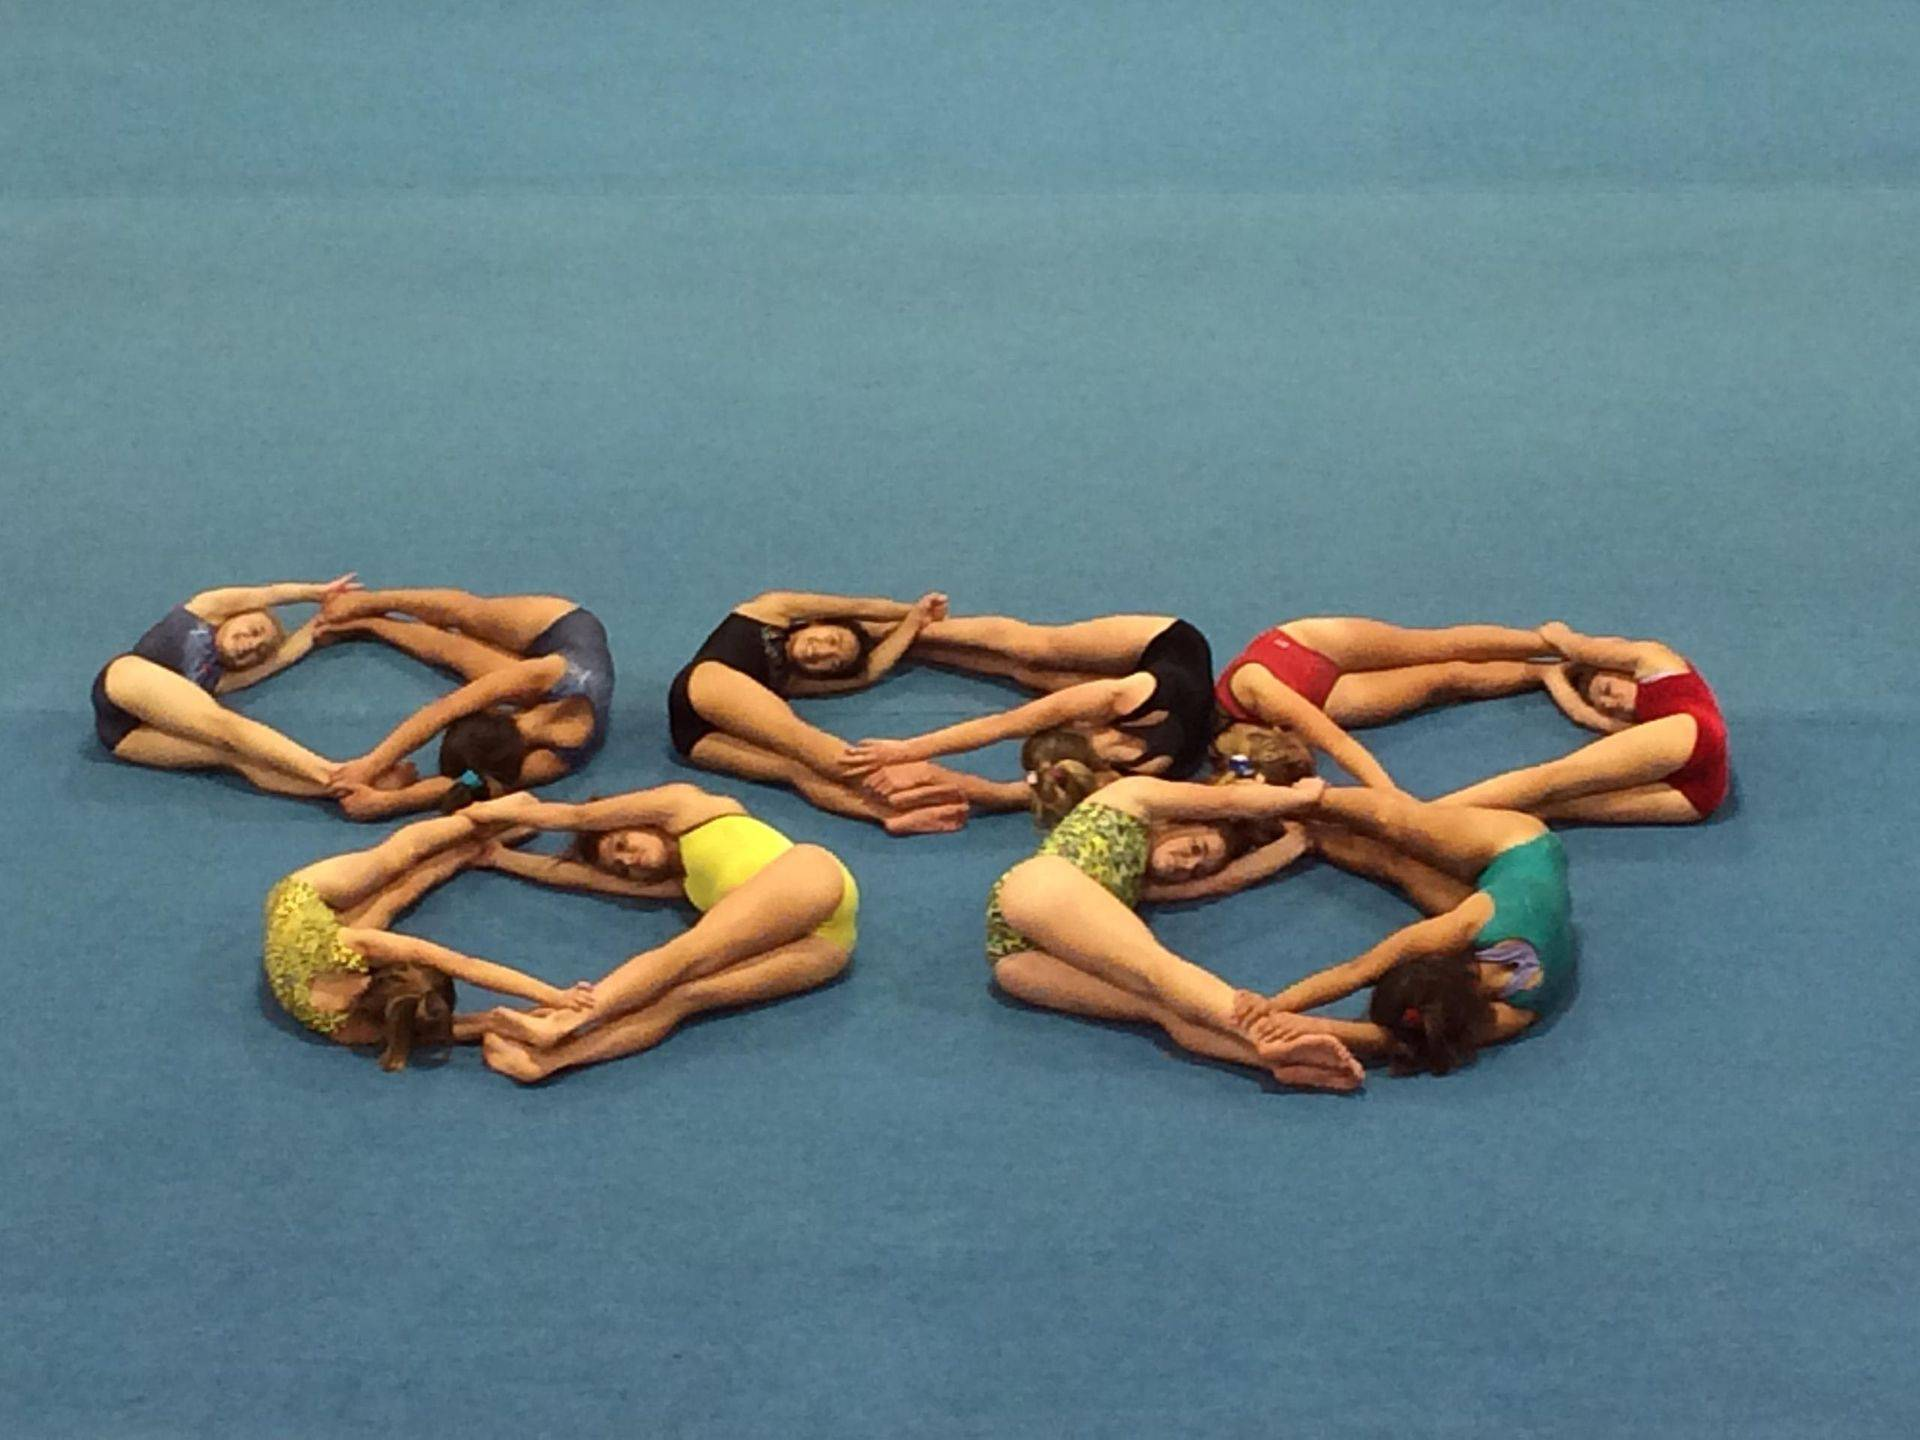 Athletes form Olympic Rings